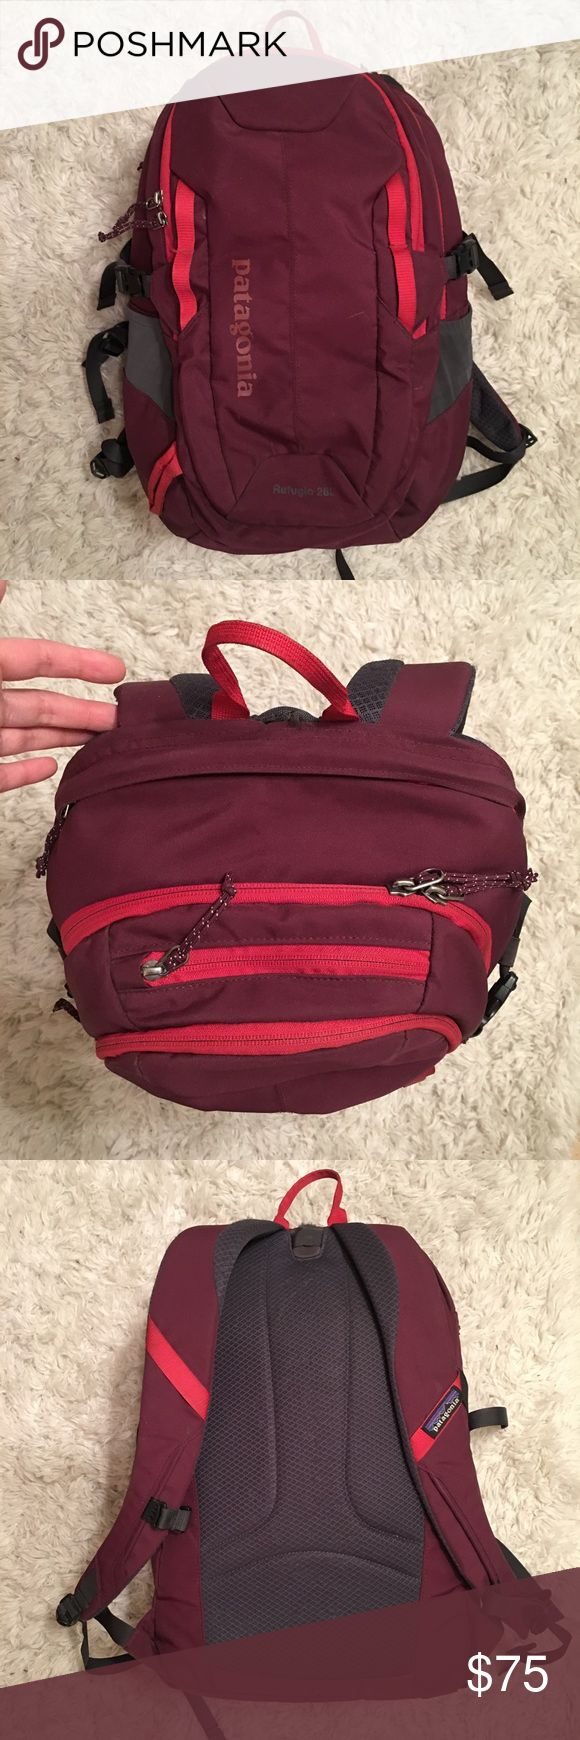 "Patagonia Backpack Selling my 28L Refugio Patagonia backpack in ""oxblood red."" Lightly used, great backpack! Make an offer if you'd like :) no trades please Patagonia Bags Backpacks"